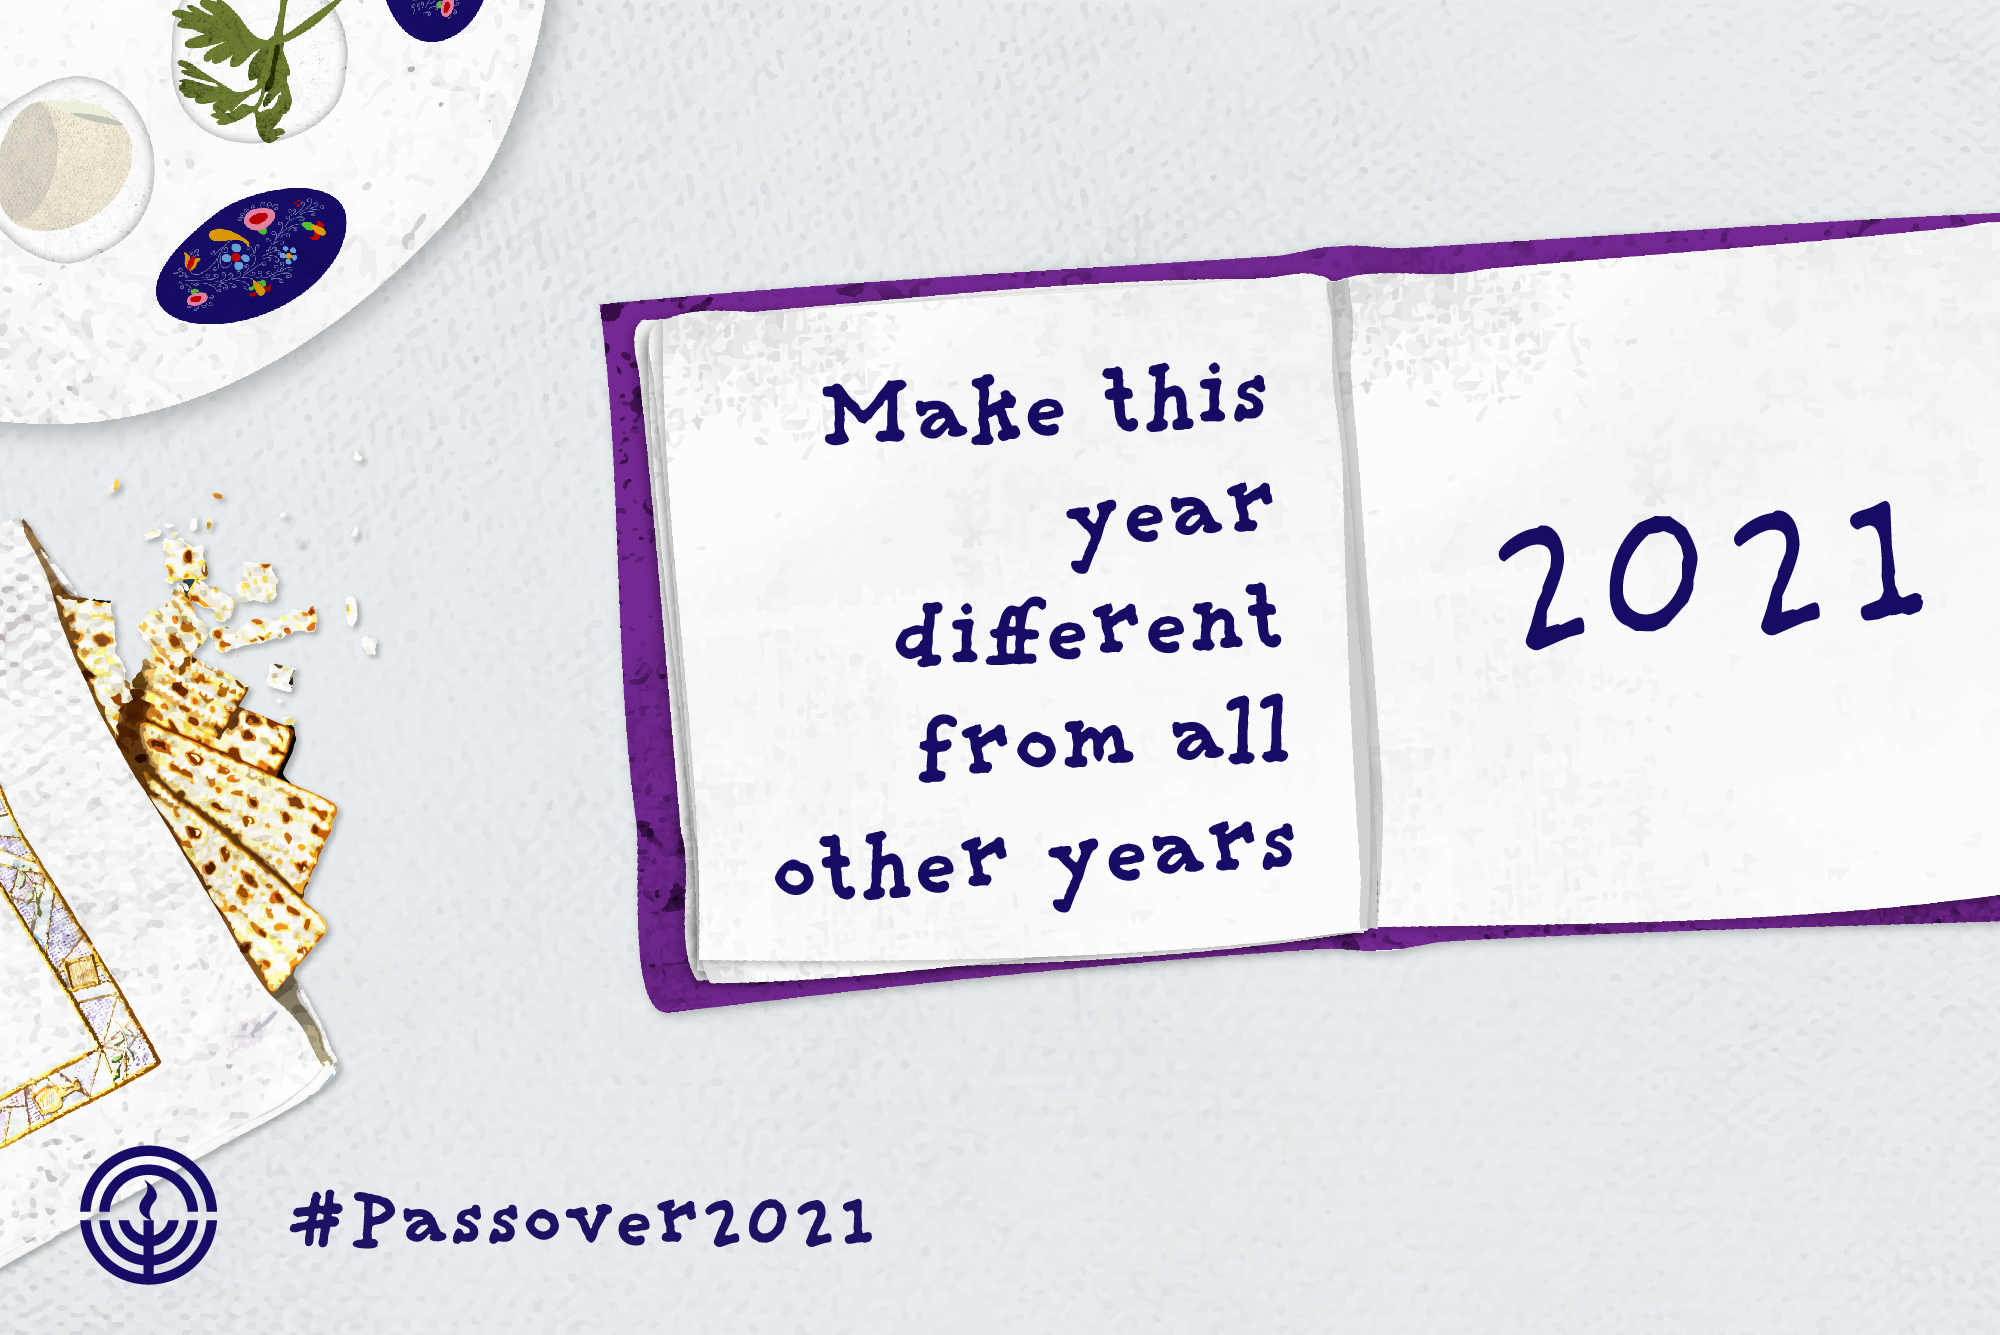 Passover Campaign Archive